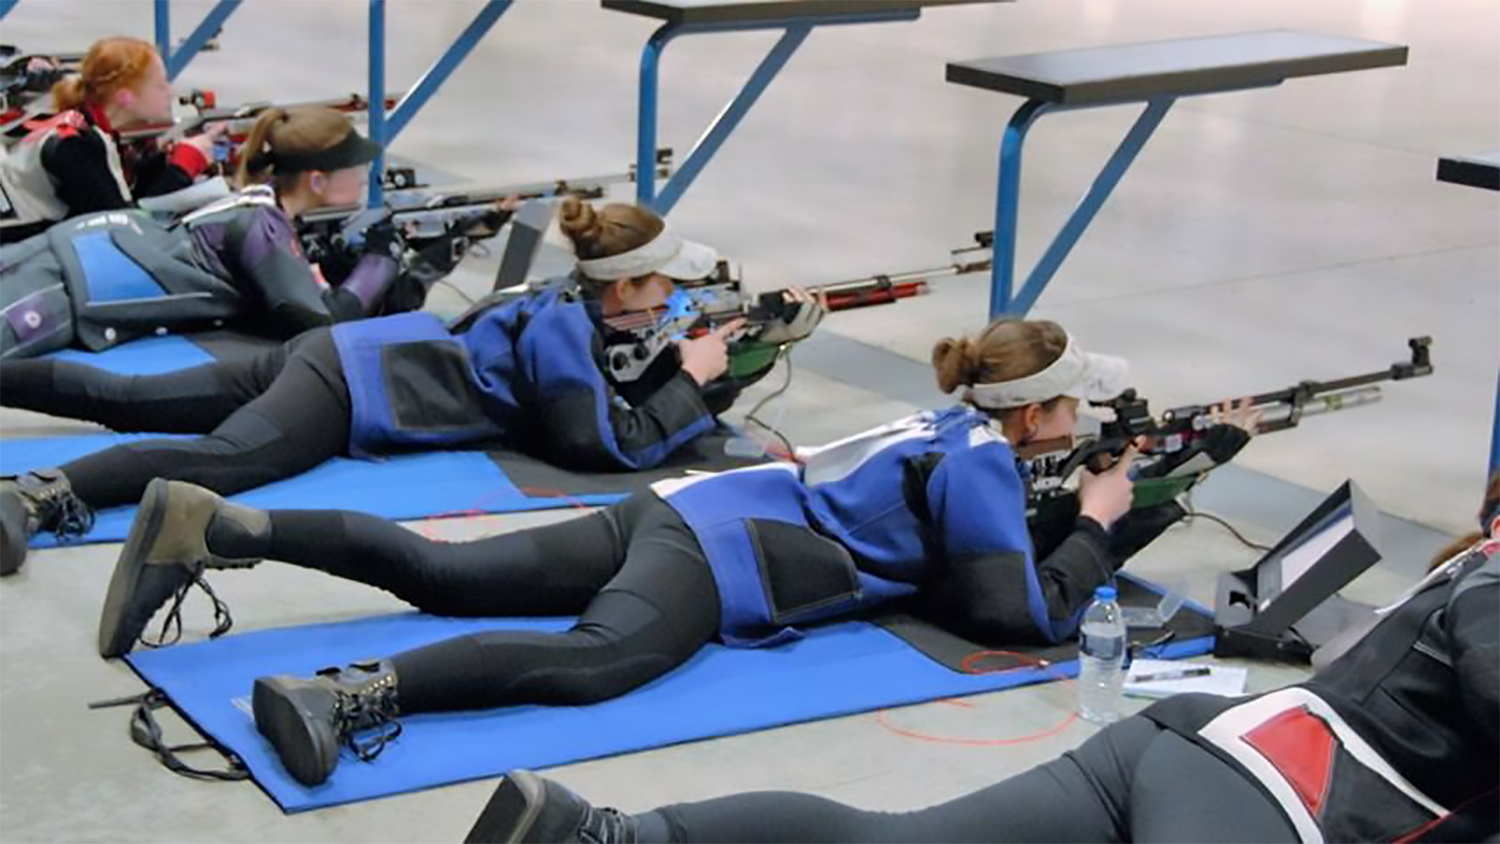 Don't Miss the Chance to Attend NRA Junior Smallbore Camp!